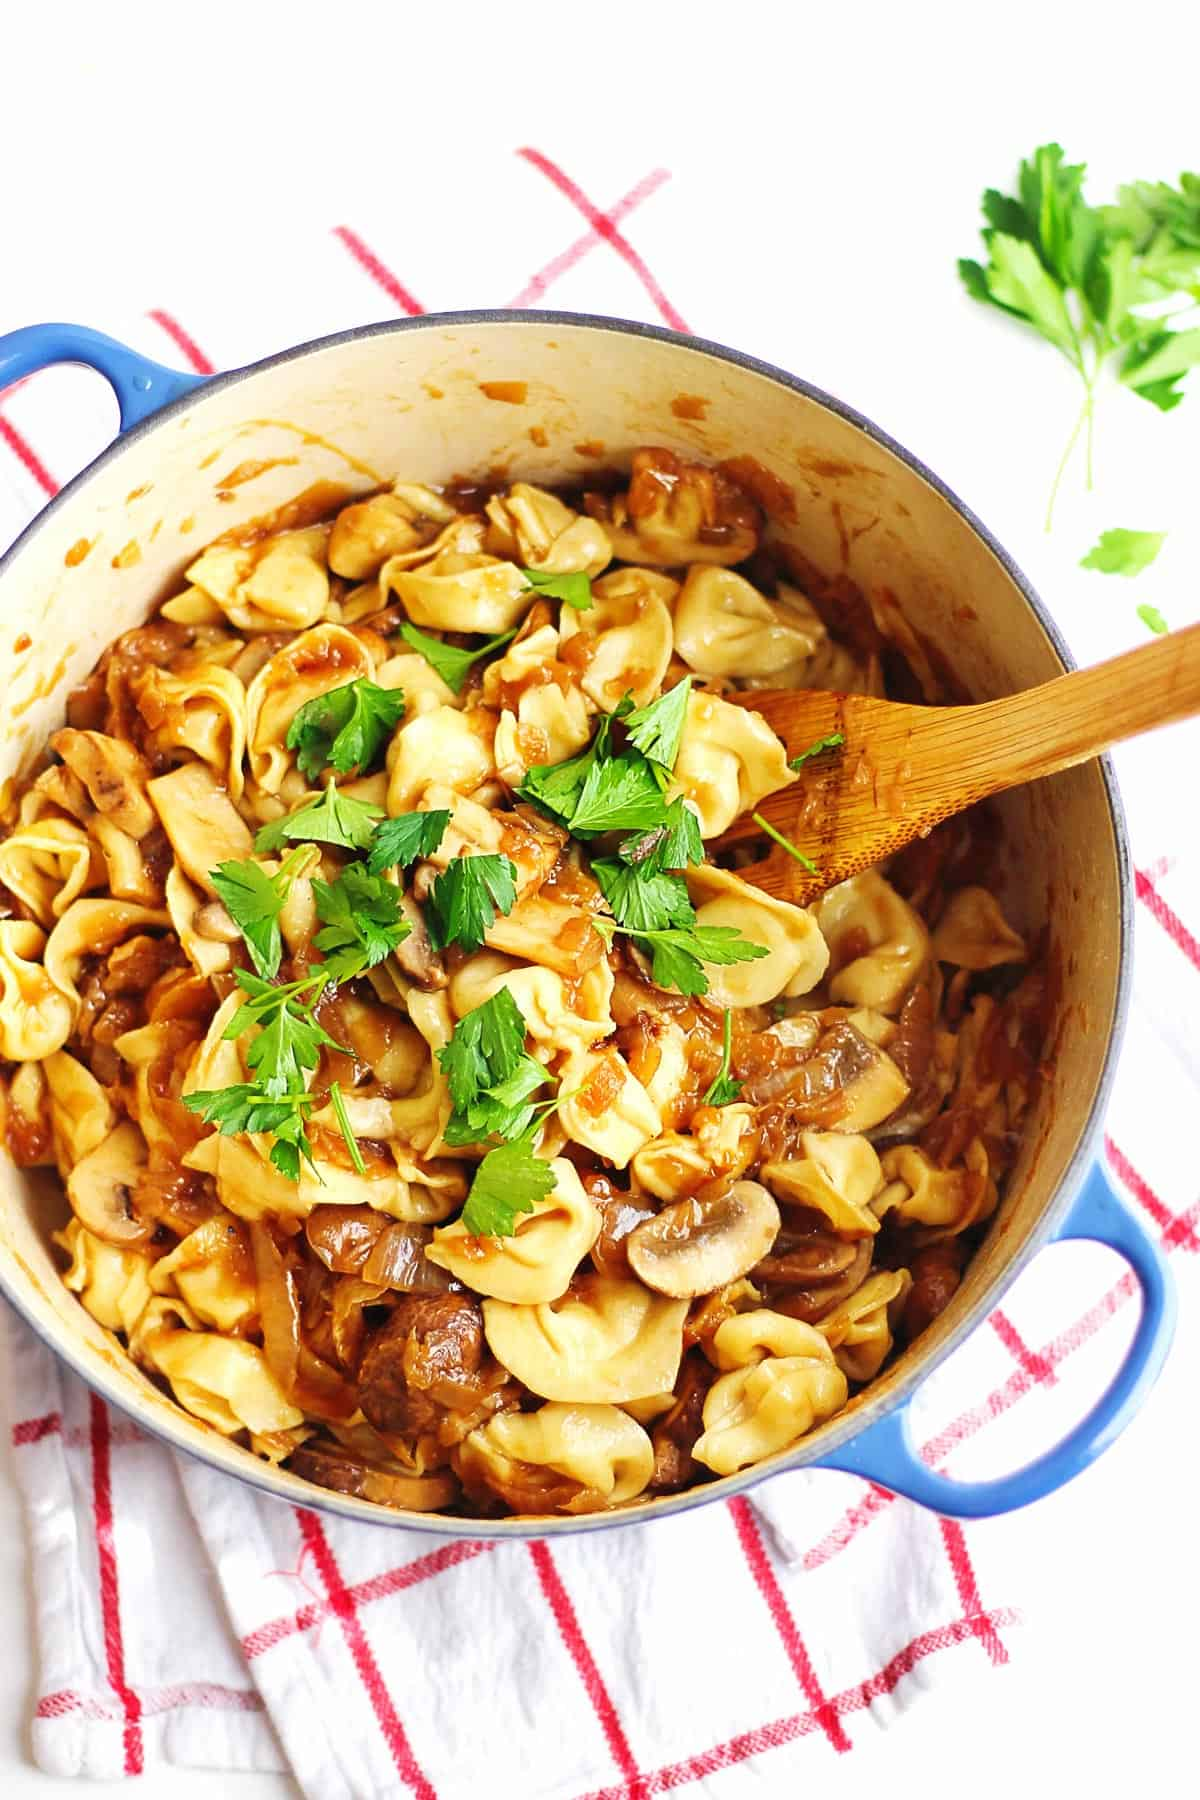 Cheese tortellini with caramelized onion sauce with a wooden spoon